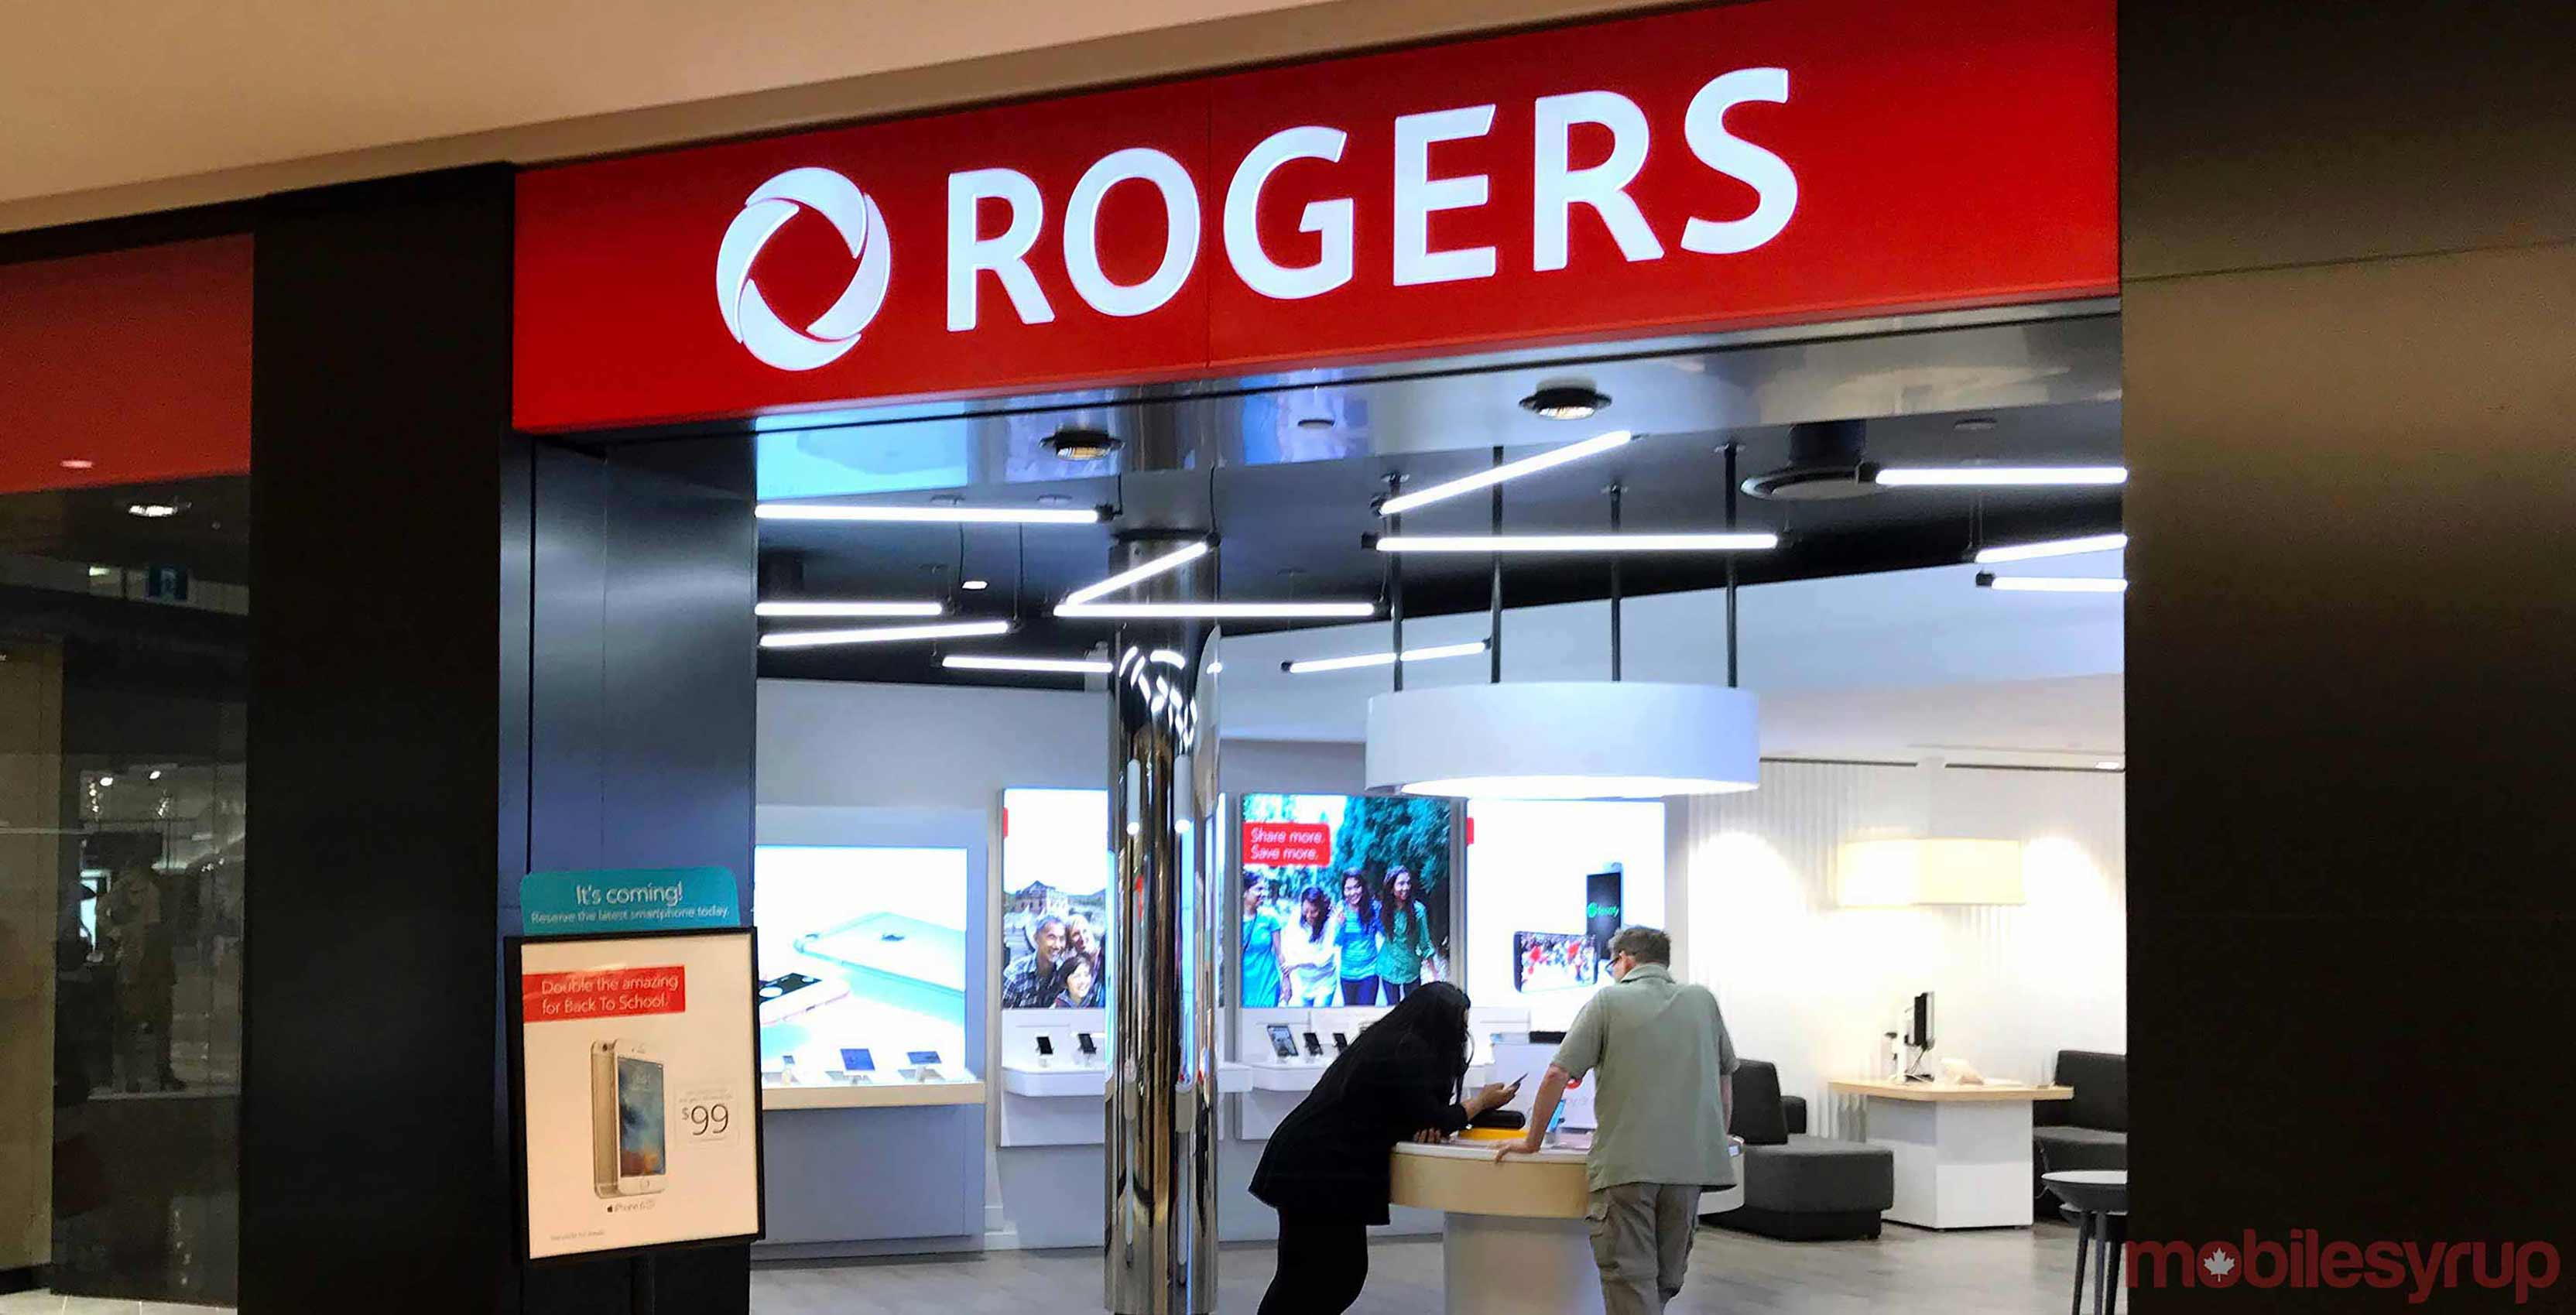 Rogers storefront